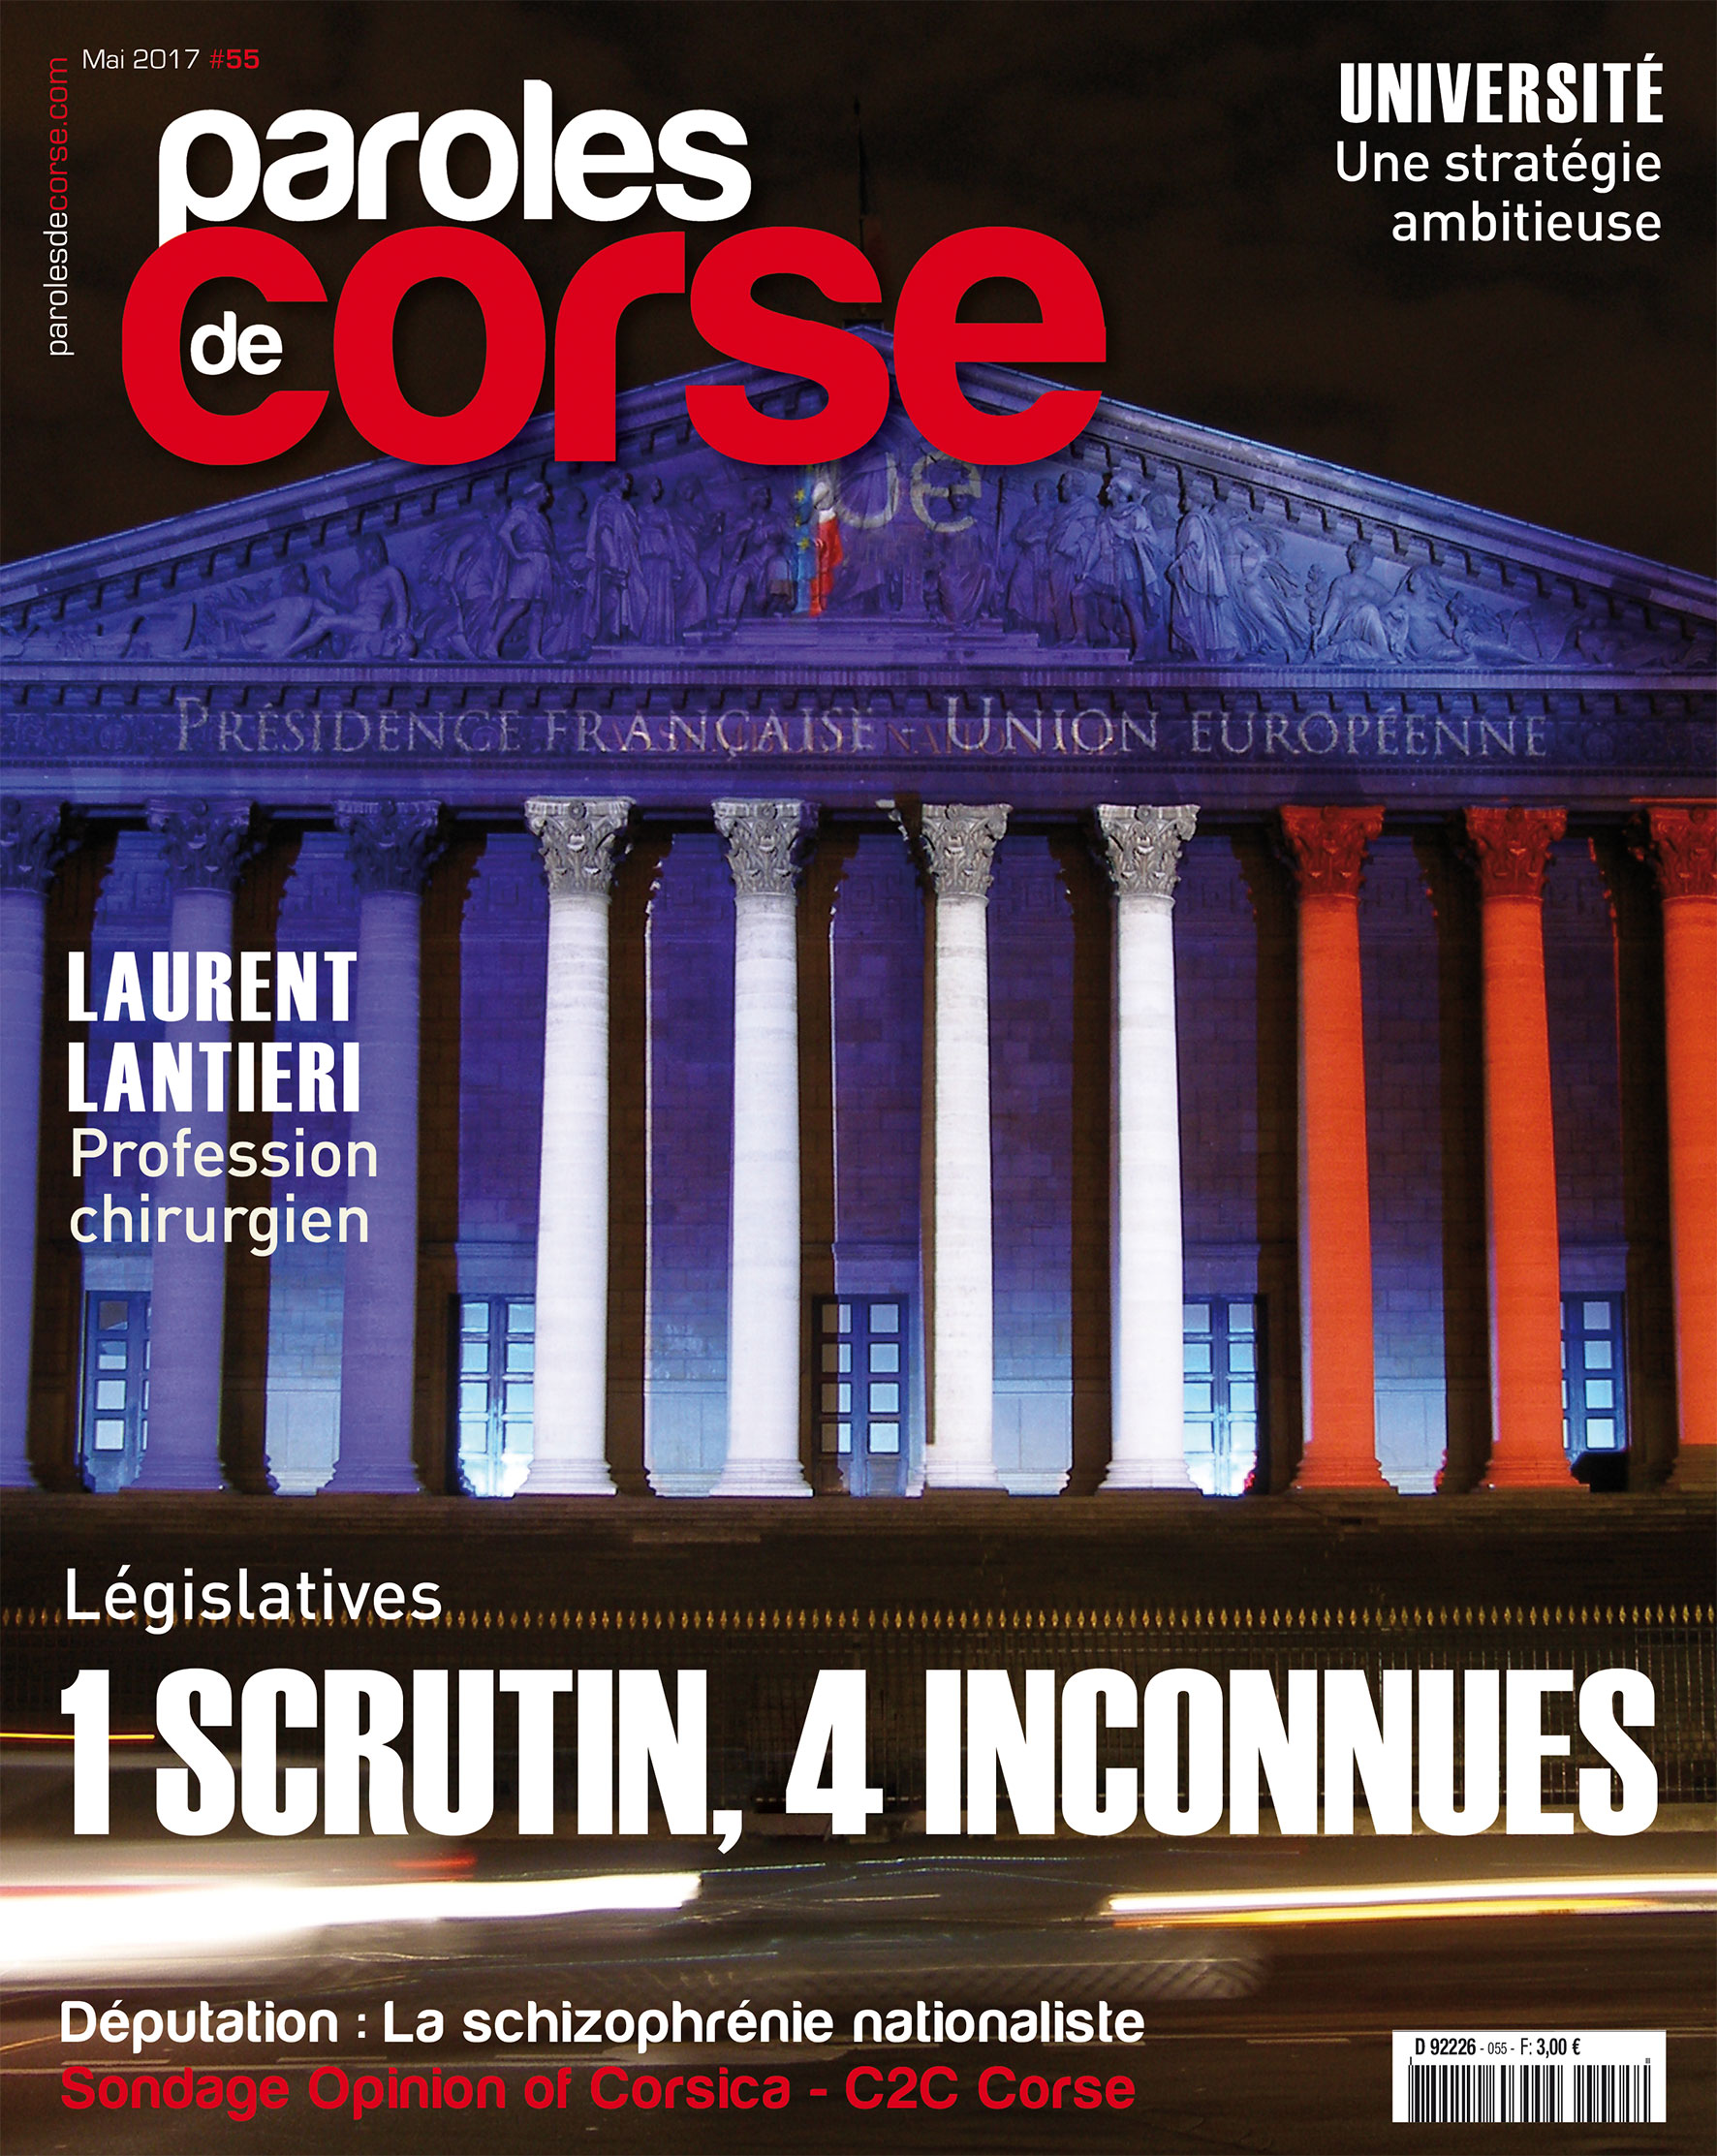 "Sondage Exclusif Paroles de Corse - Opinion of Corsica – C2C Corse*- Législatives : ""La schizophrénie nationaliste"""